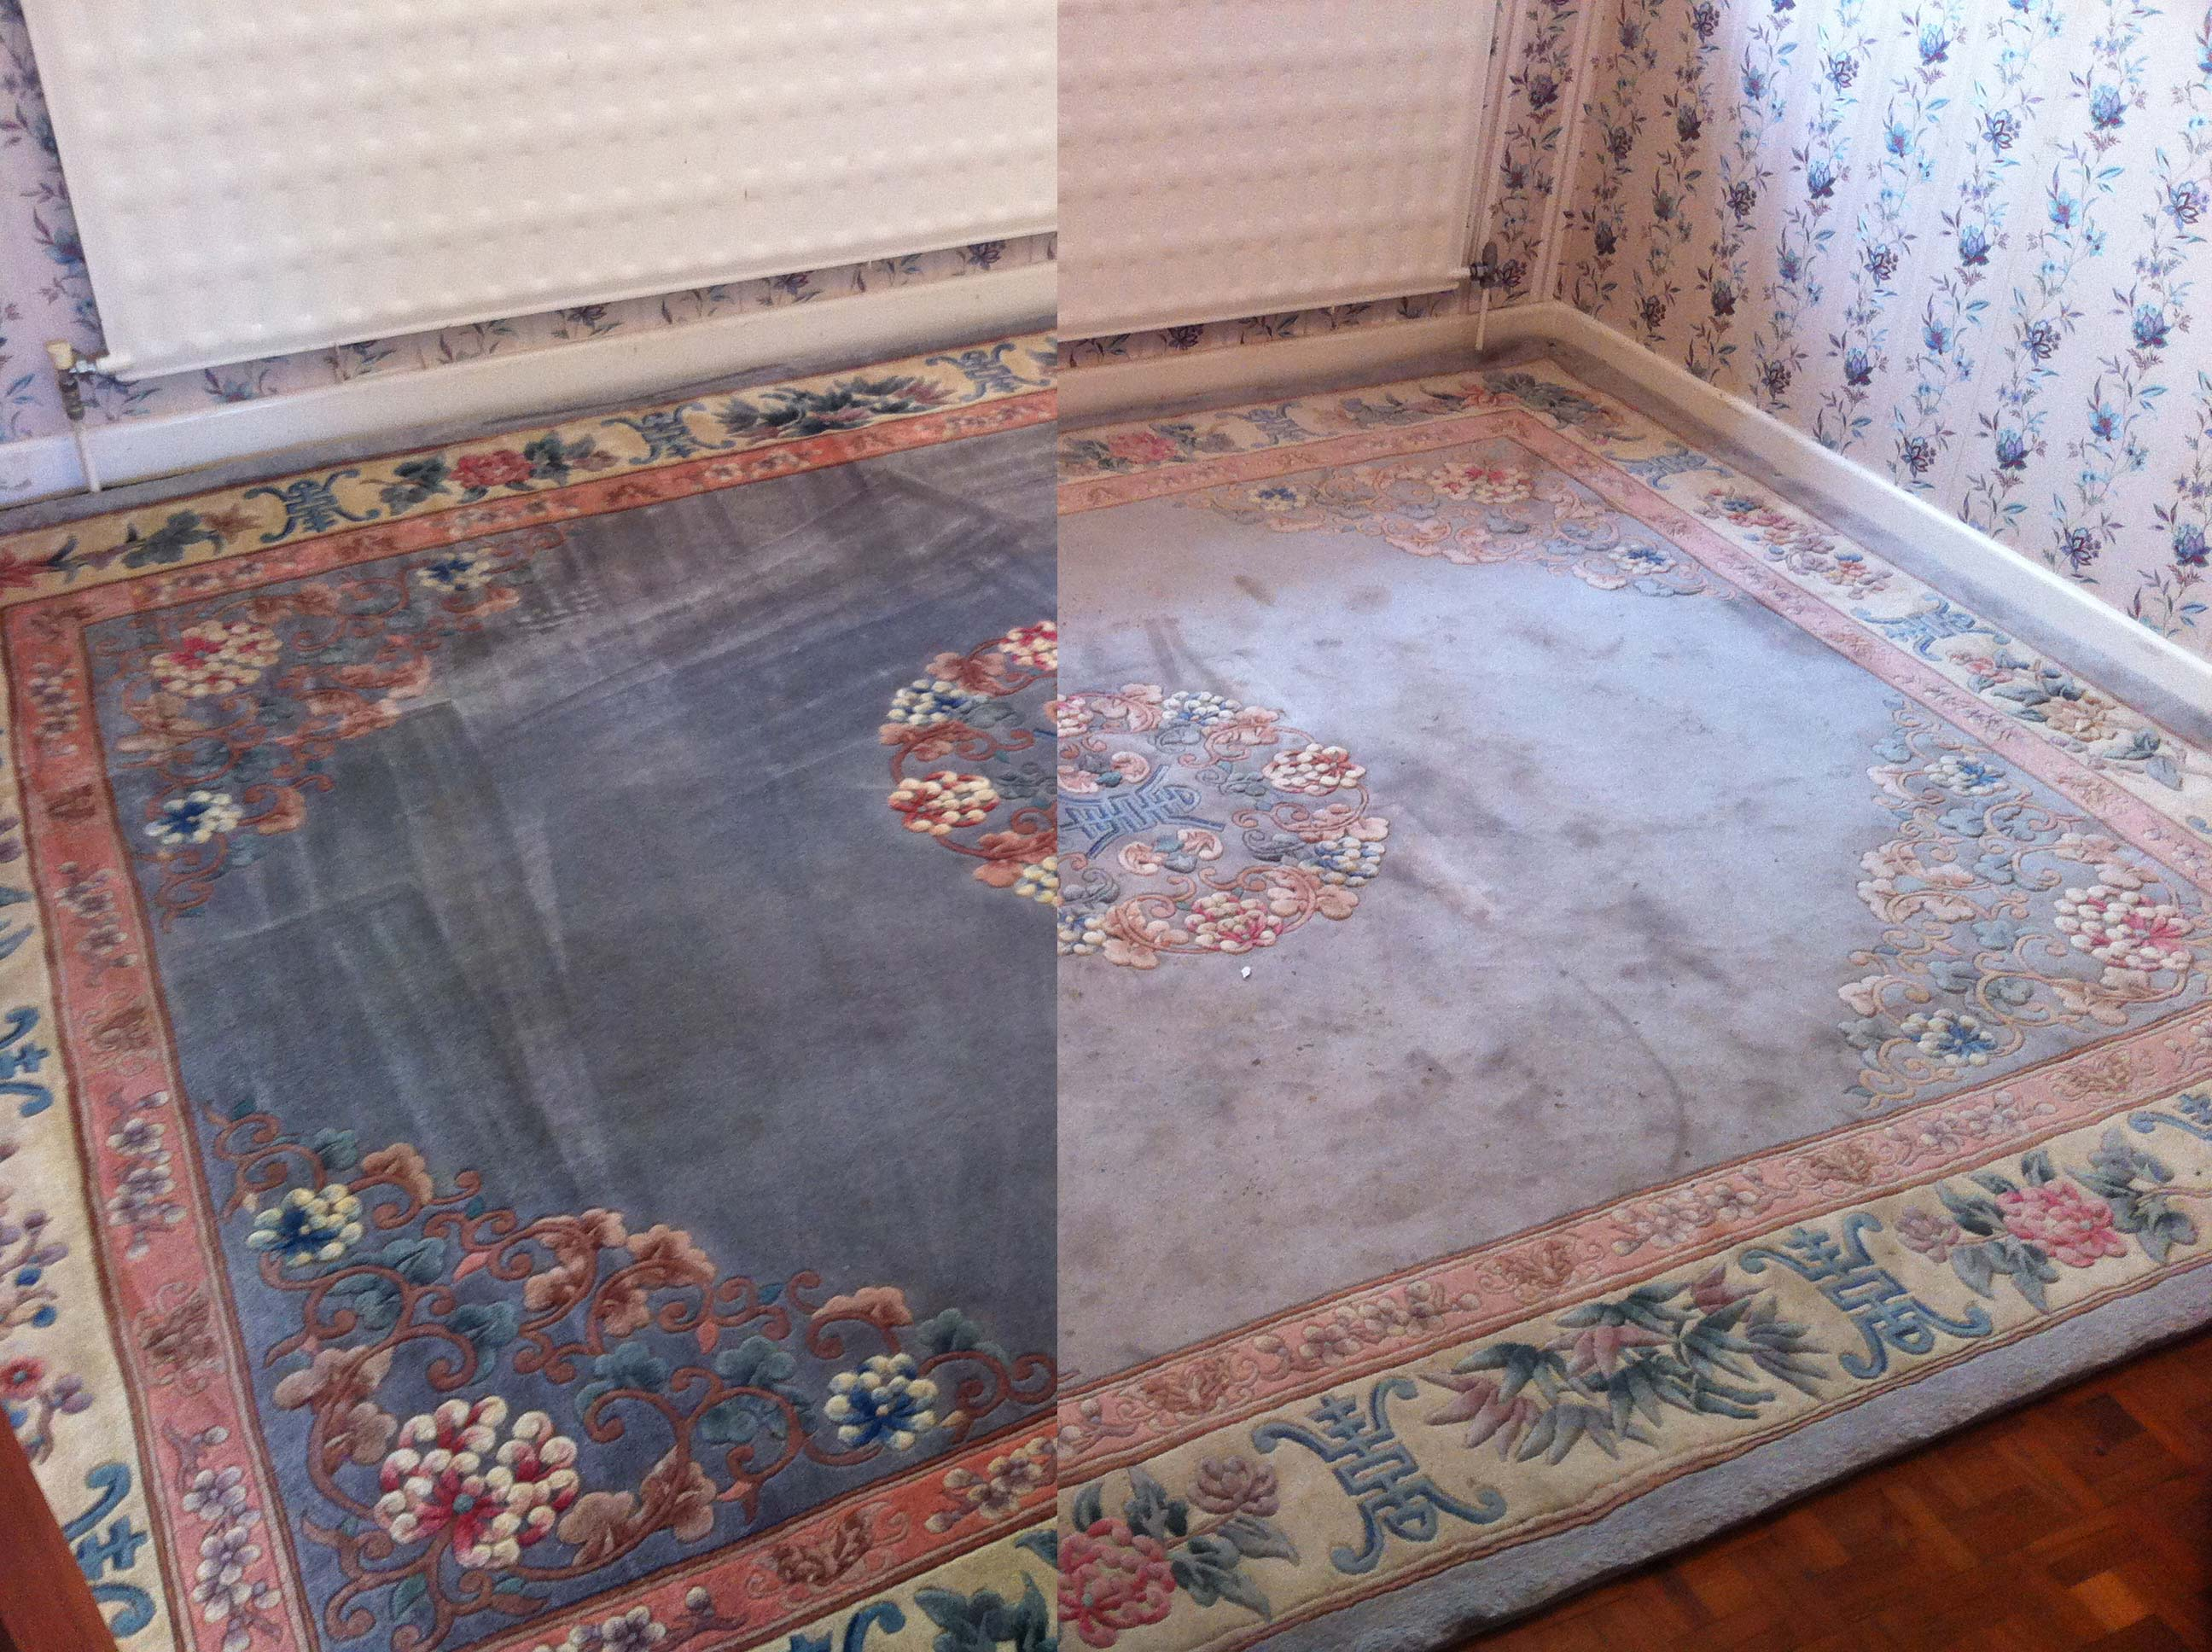 Specialist Oriental Rug Cleaning Hook Cleaning Services